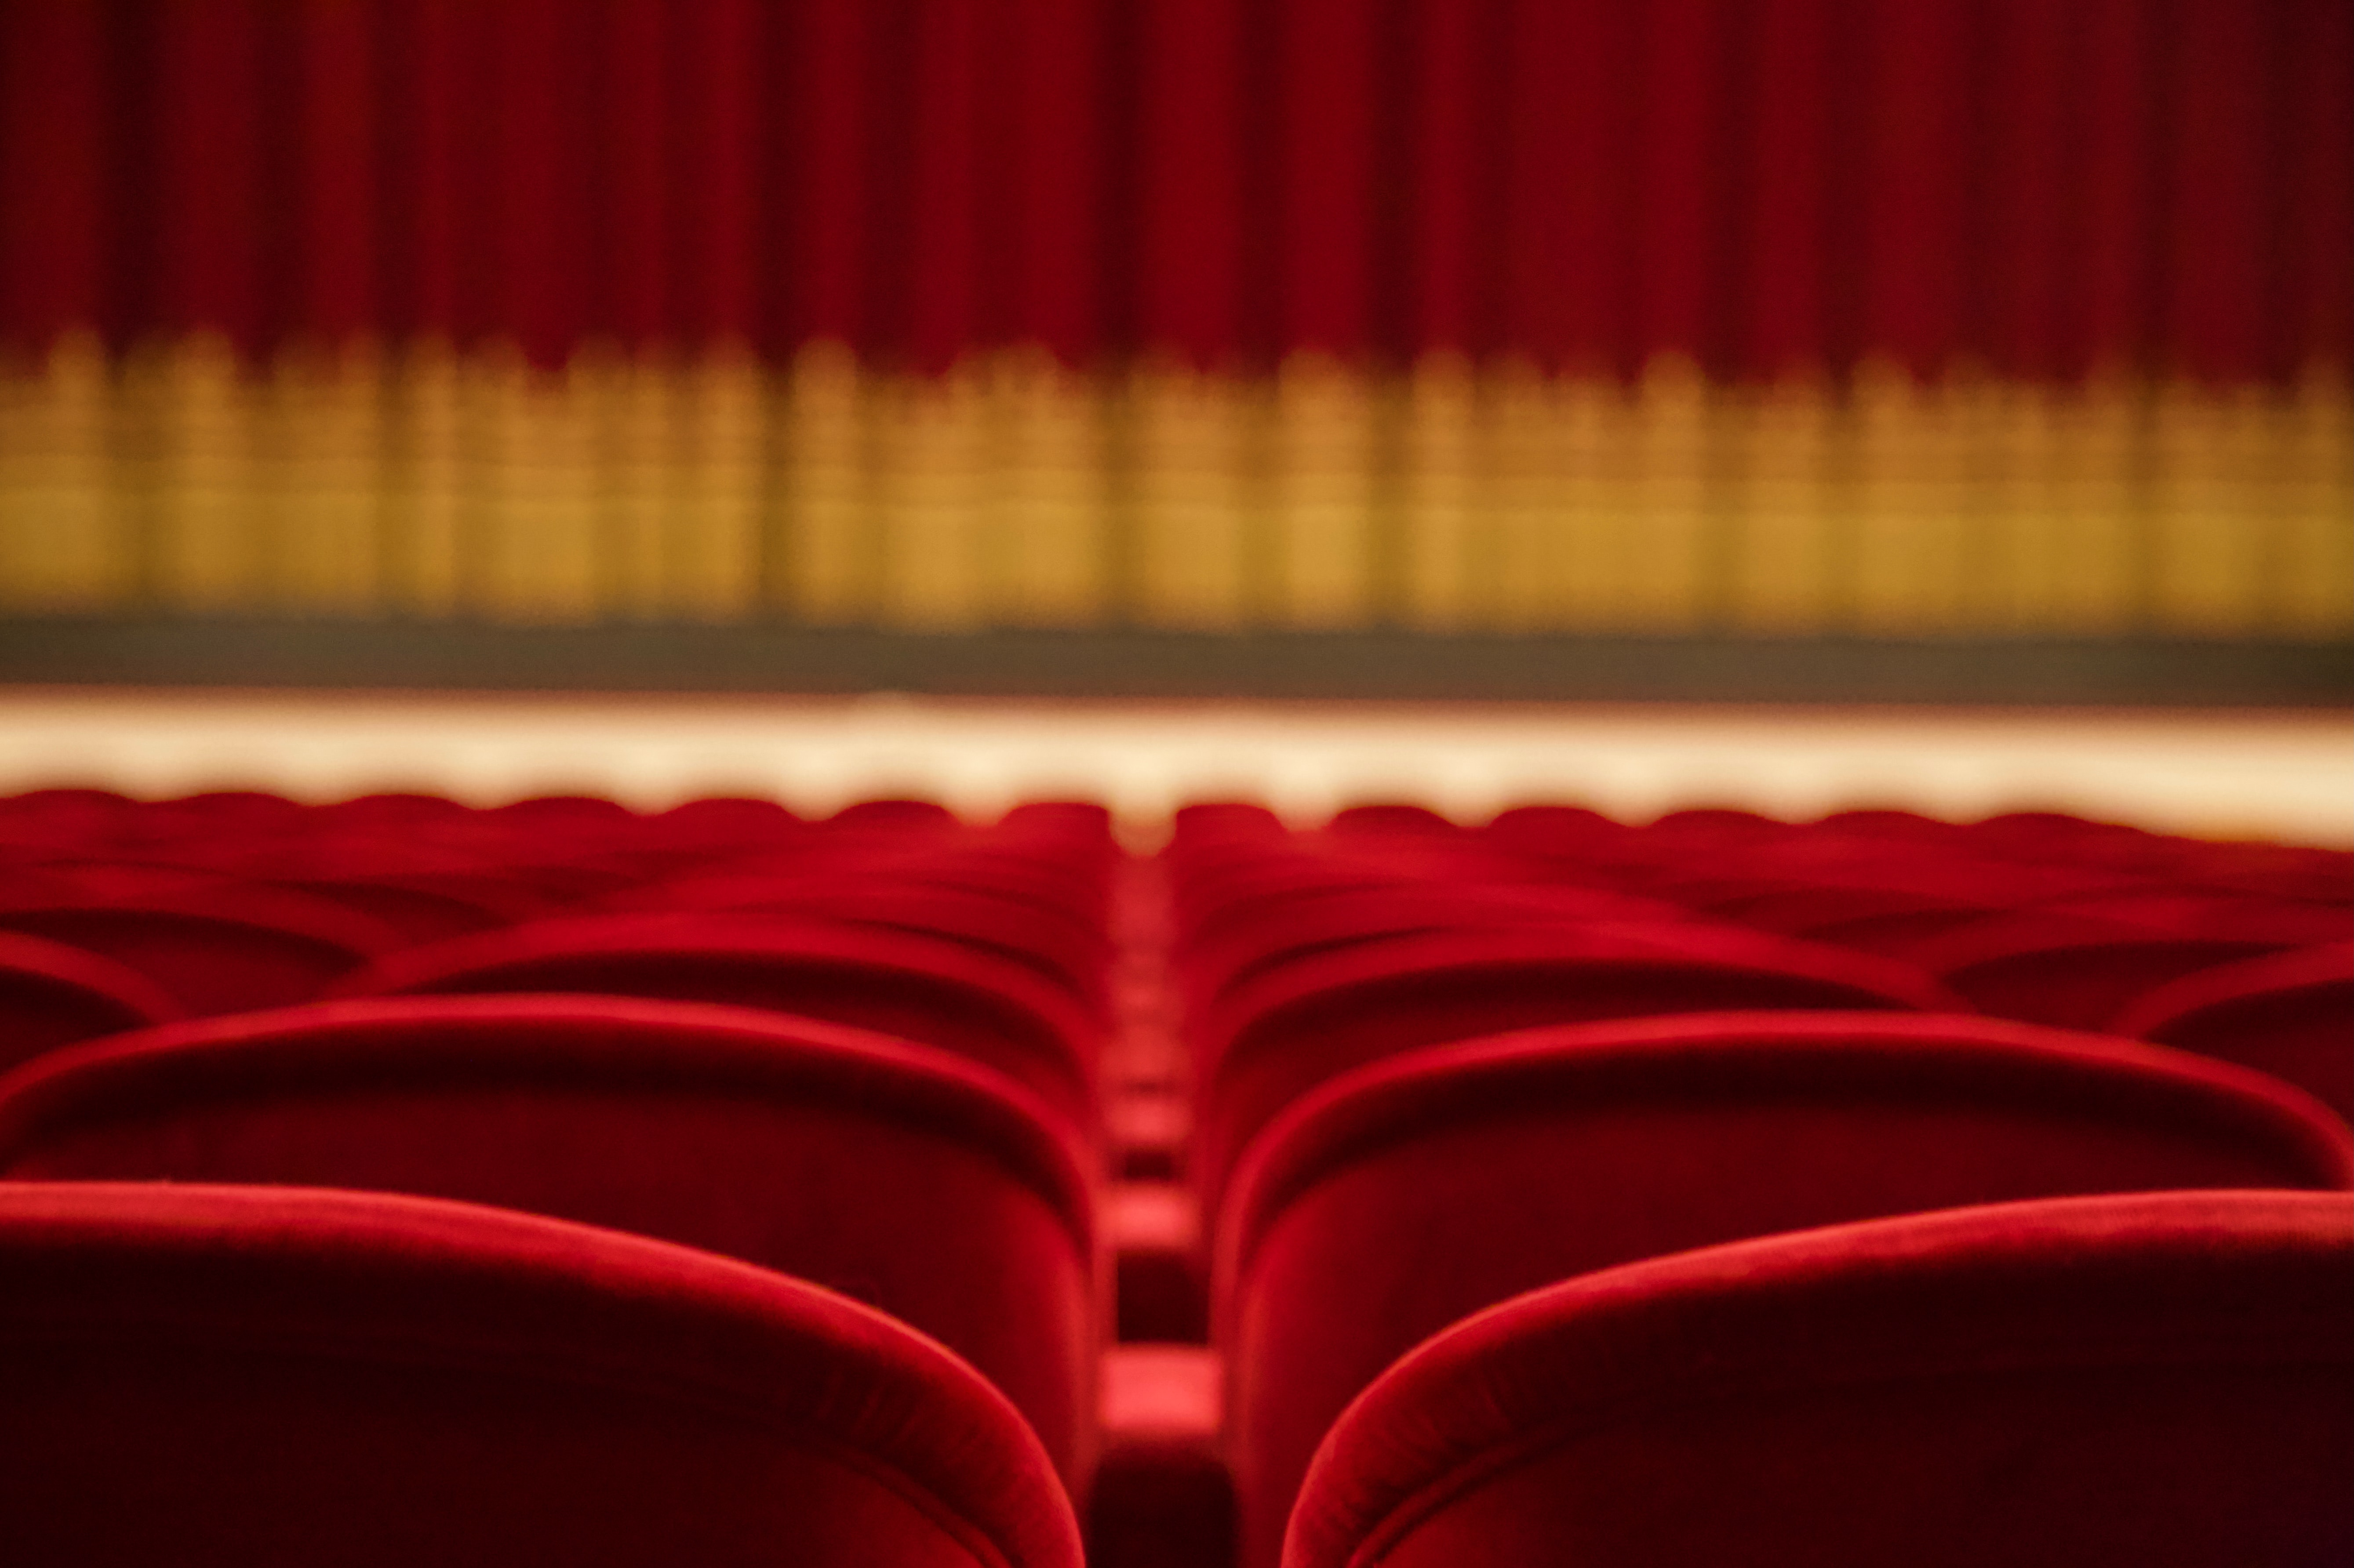 a close p shot of red theatre chairs shows the theatre curtain blurred in the forefront of the image